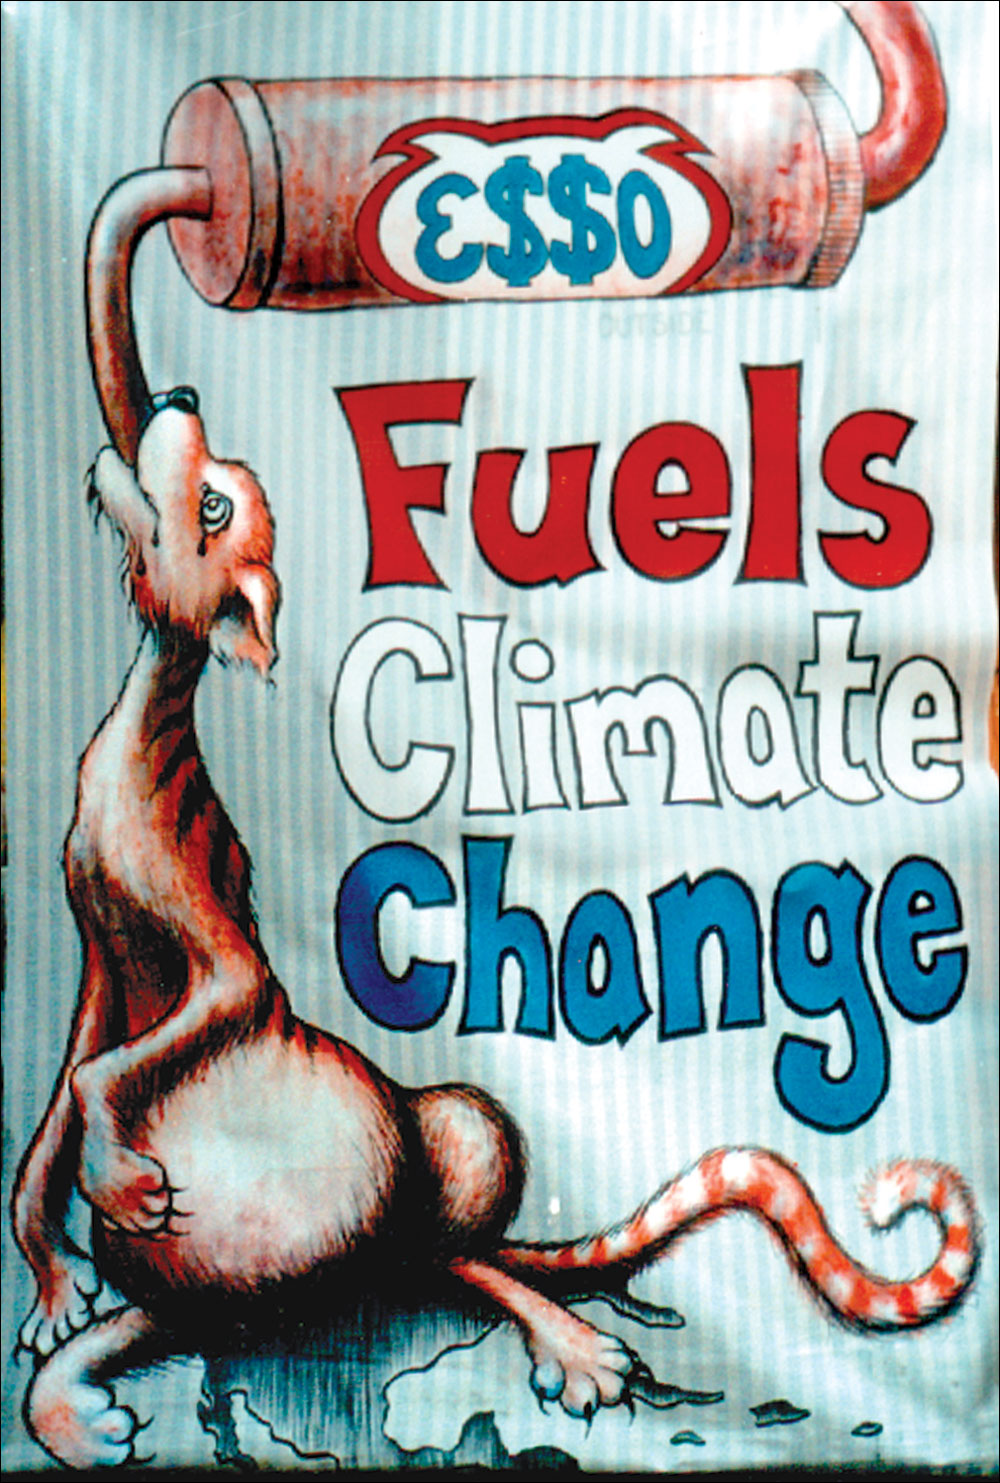 Banner for a series of protests against Esso (AKA Exxon) in 2005